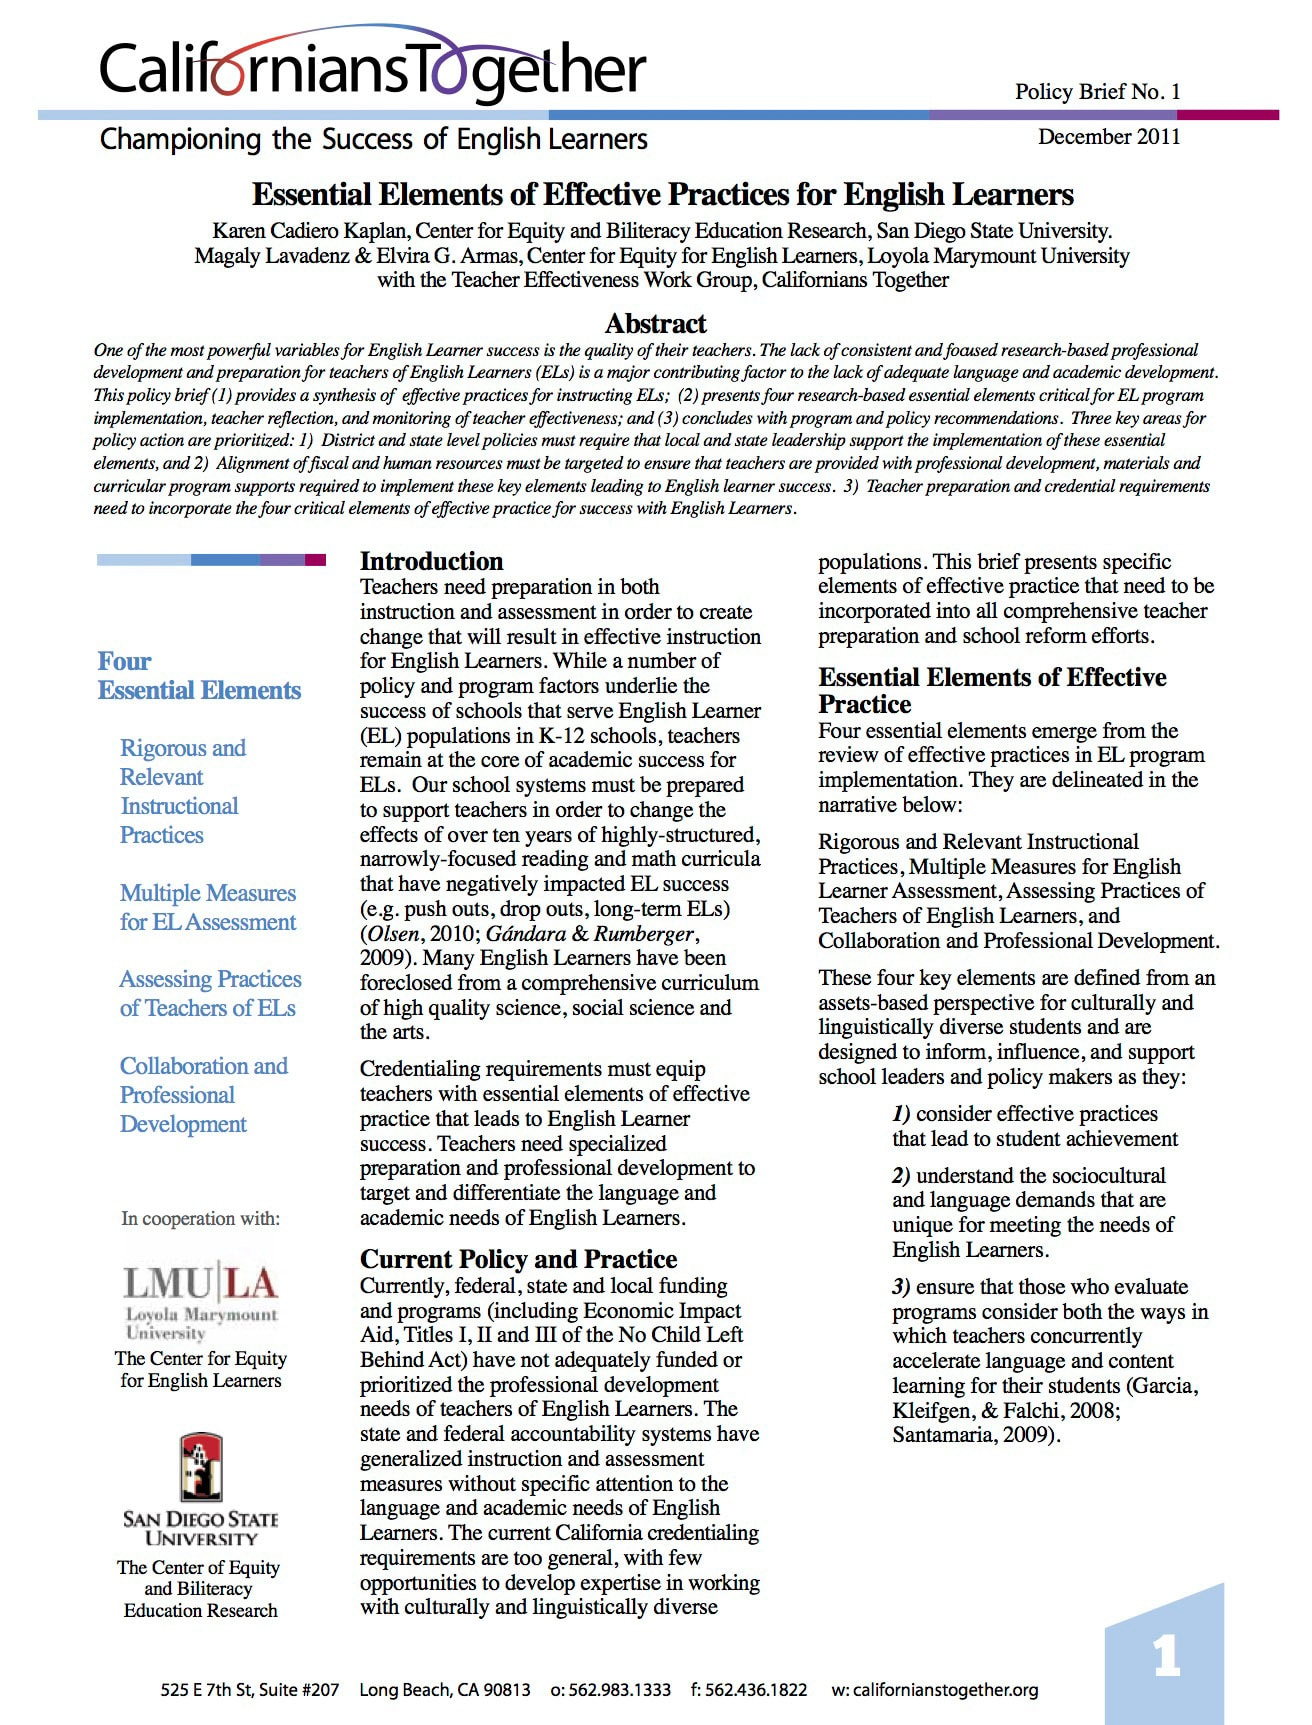 PolicyBrief7blkCaliTogDec2011-1